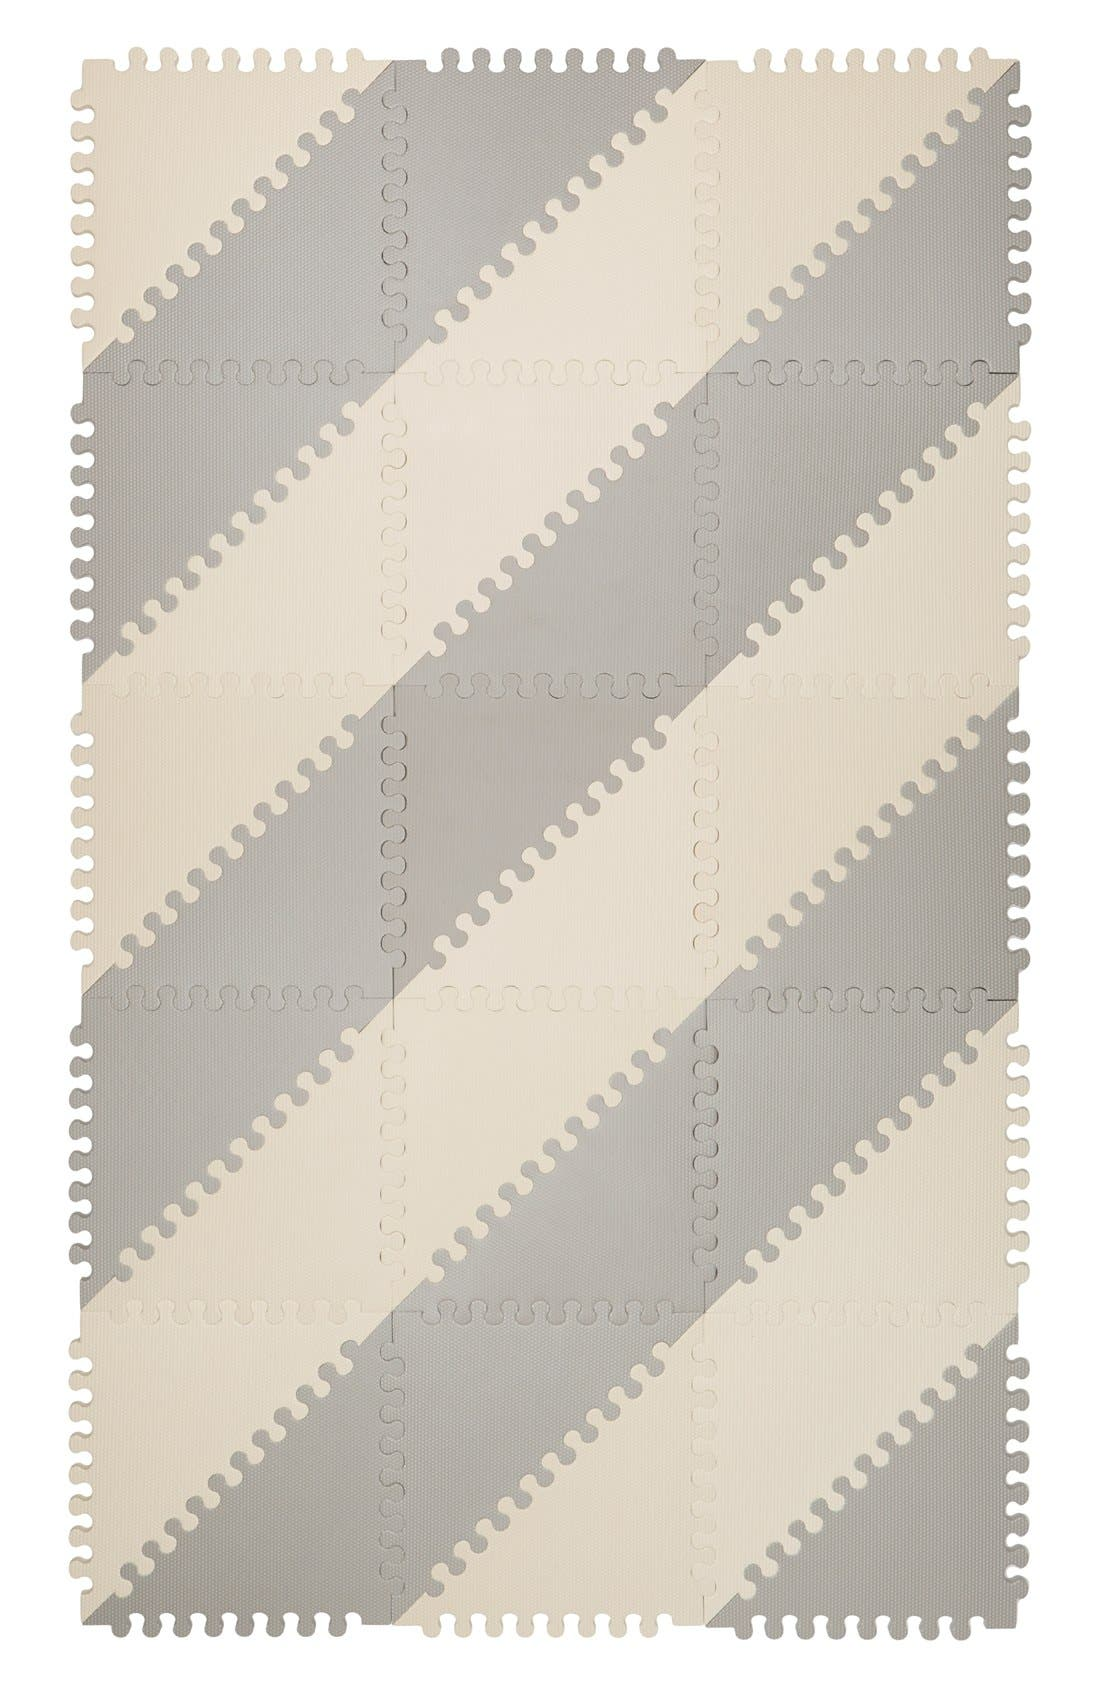 'PLAYSPOTS' Foam Floor Tiles,                             Main thumbnail 1, color,                             020